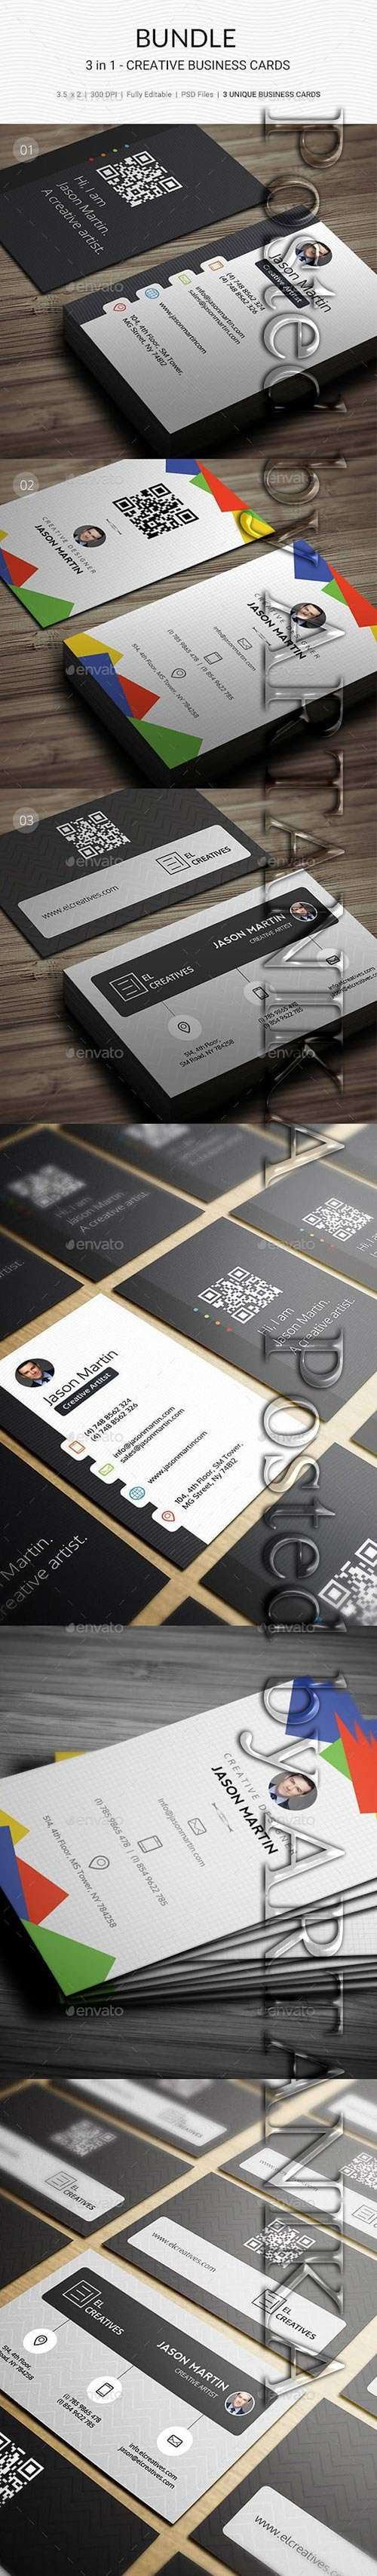 GraphicRiver - Bundle - 3 in 1 - Prime Business Cards - 179 21908391